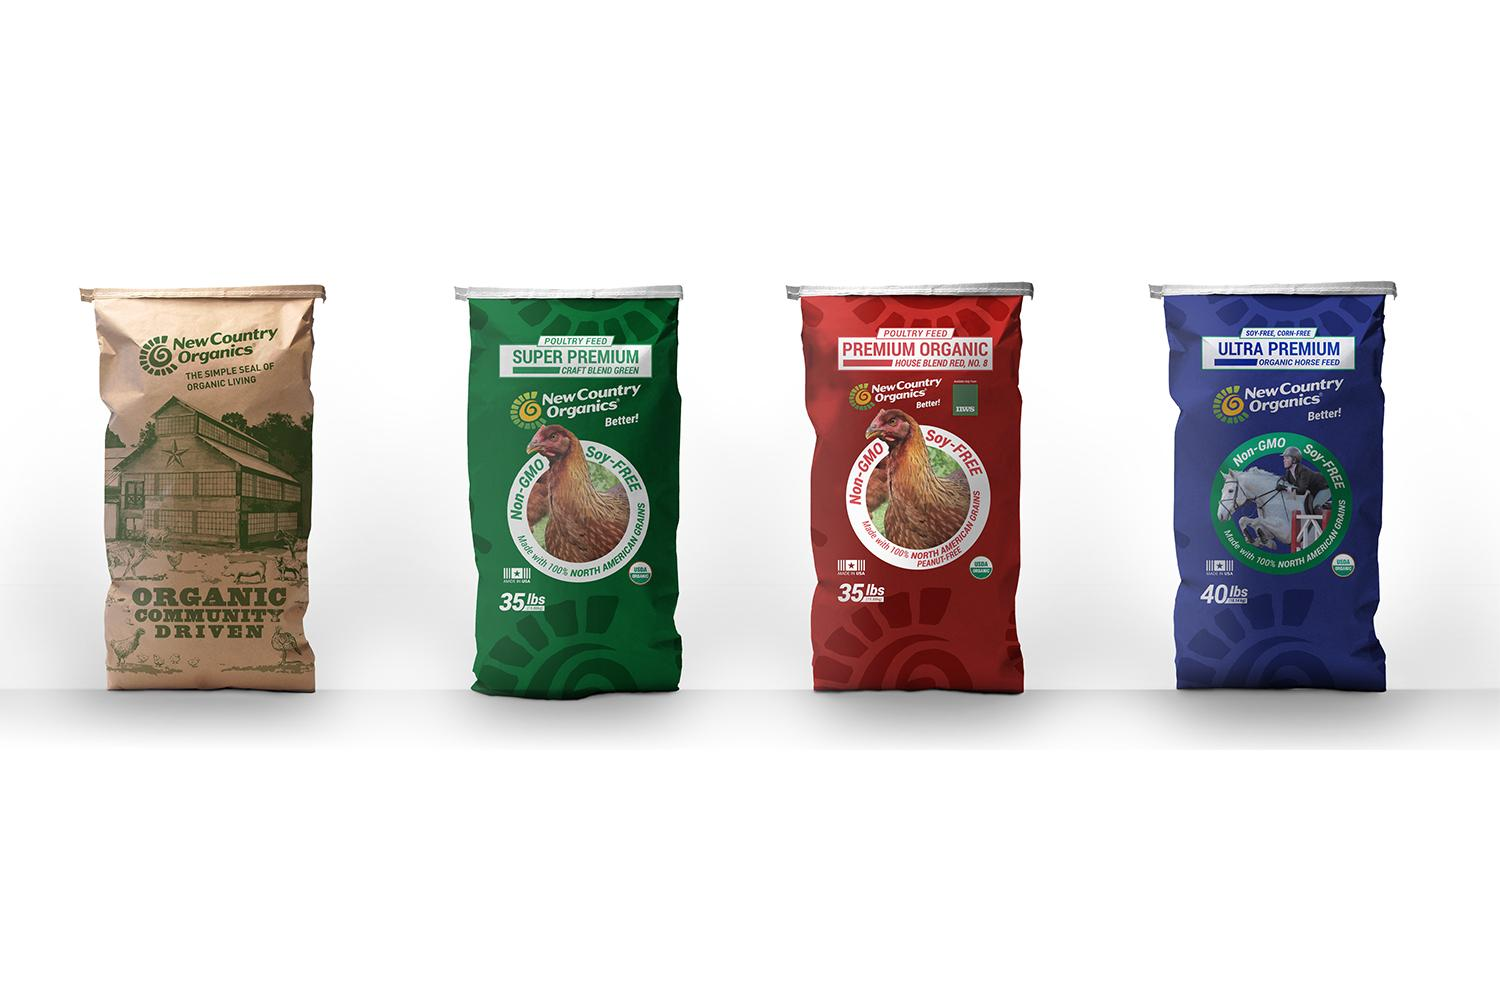 New Country Organics feed bags